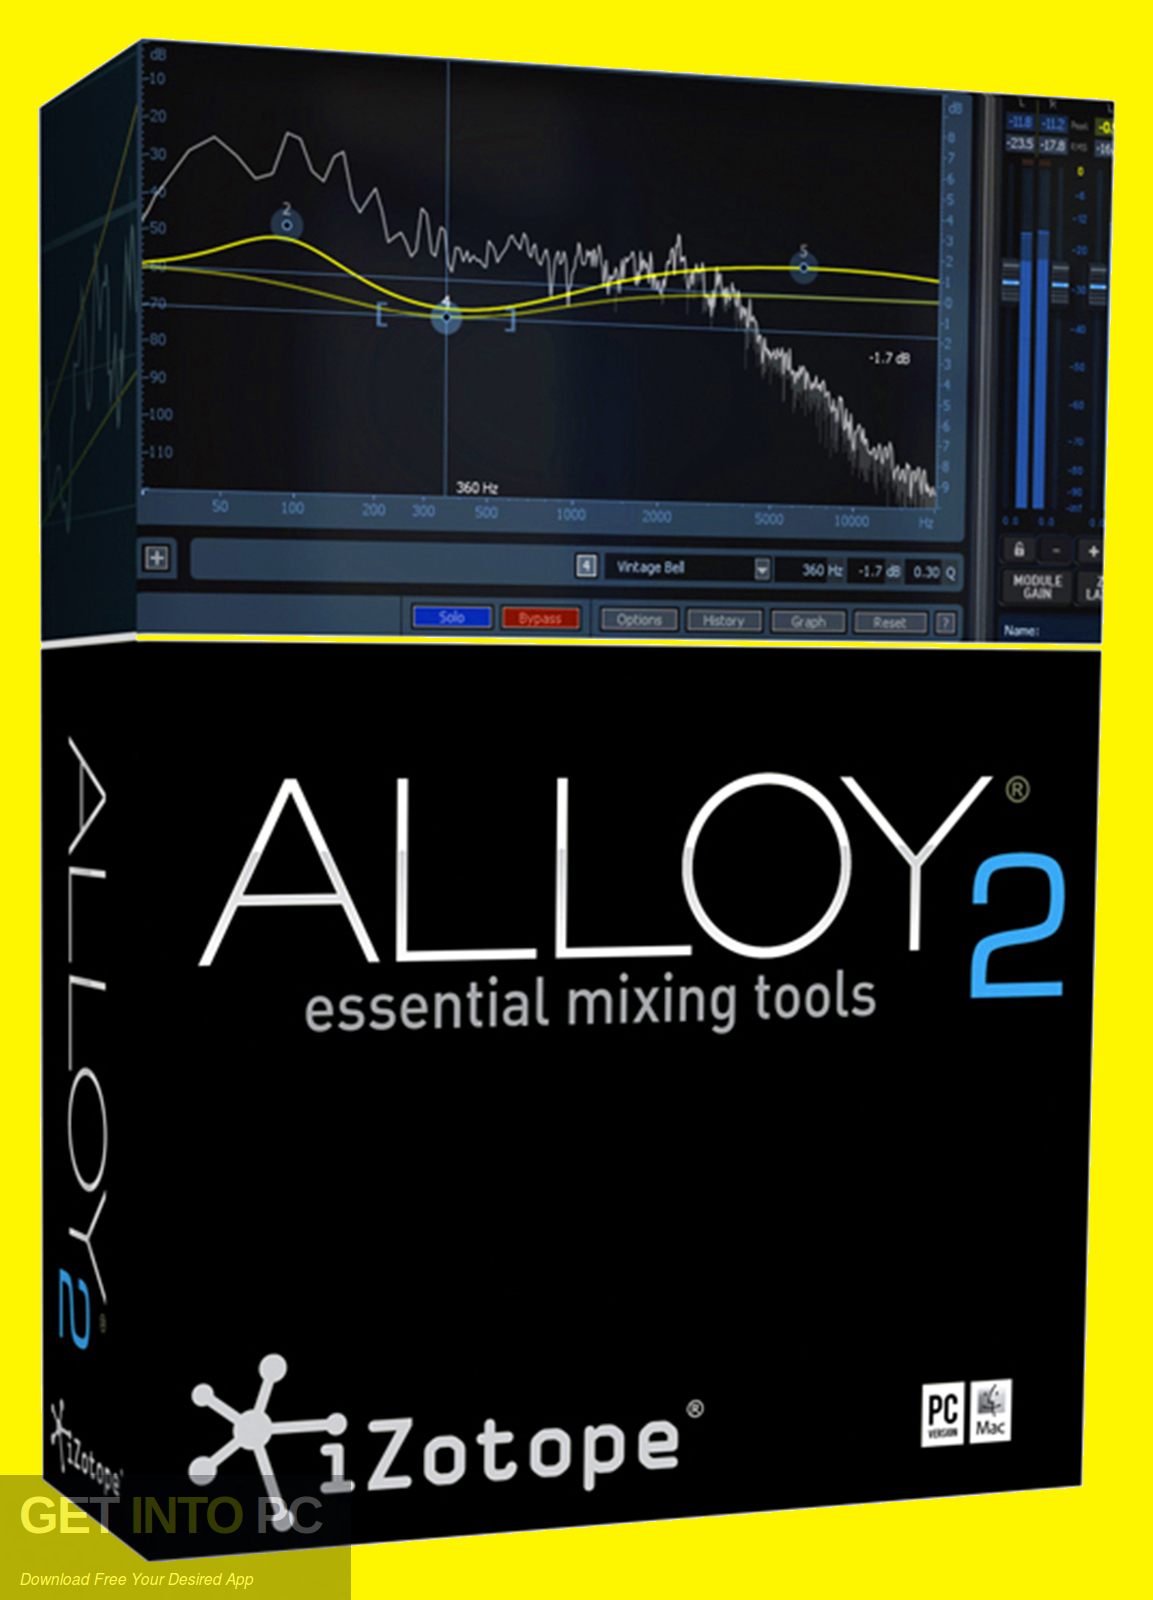 iZotope - Alloy 2 VST Download free-GetintoPC.com